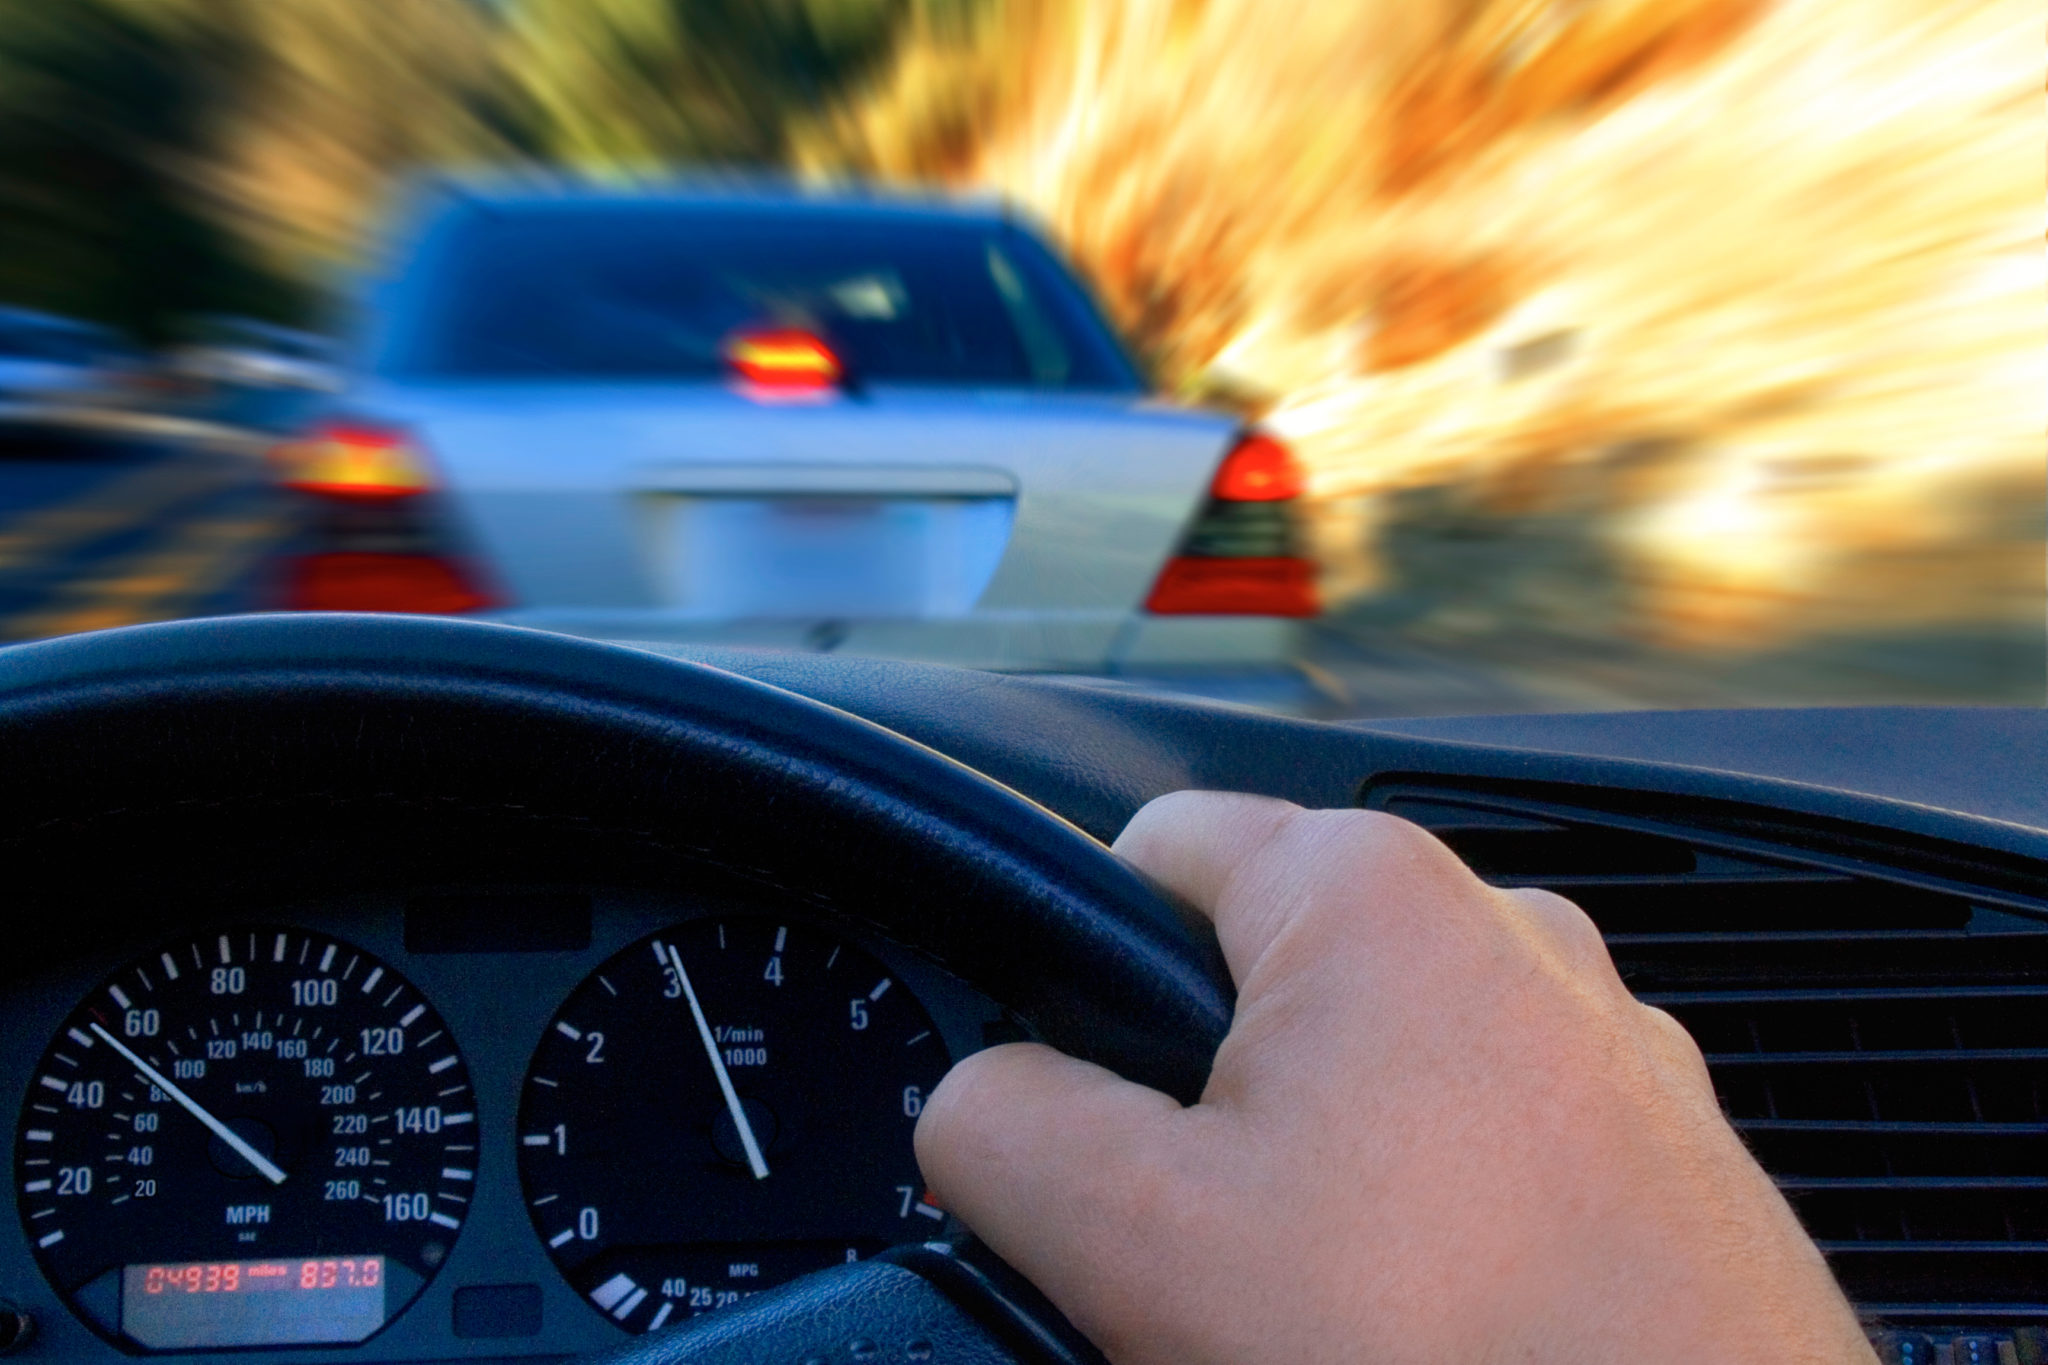 All is not lost if you're in an accident with an uninsured driver